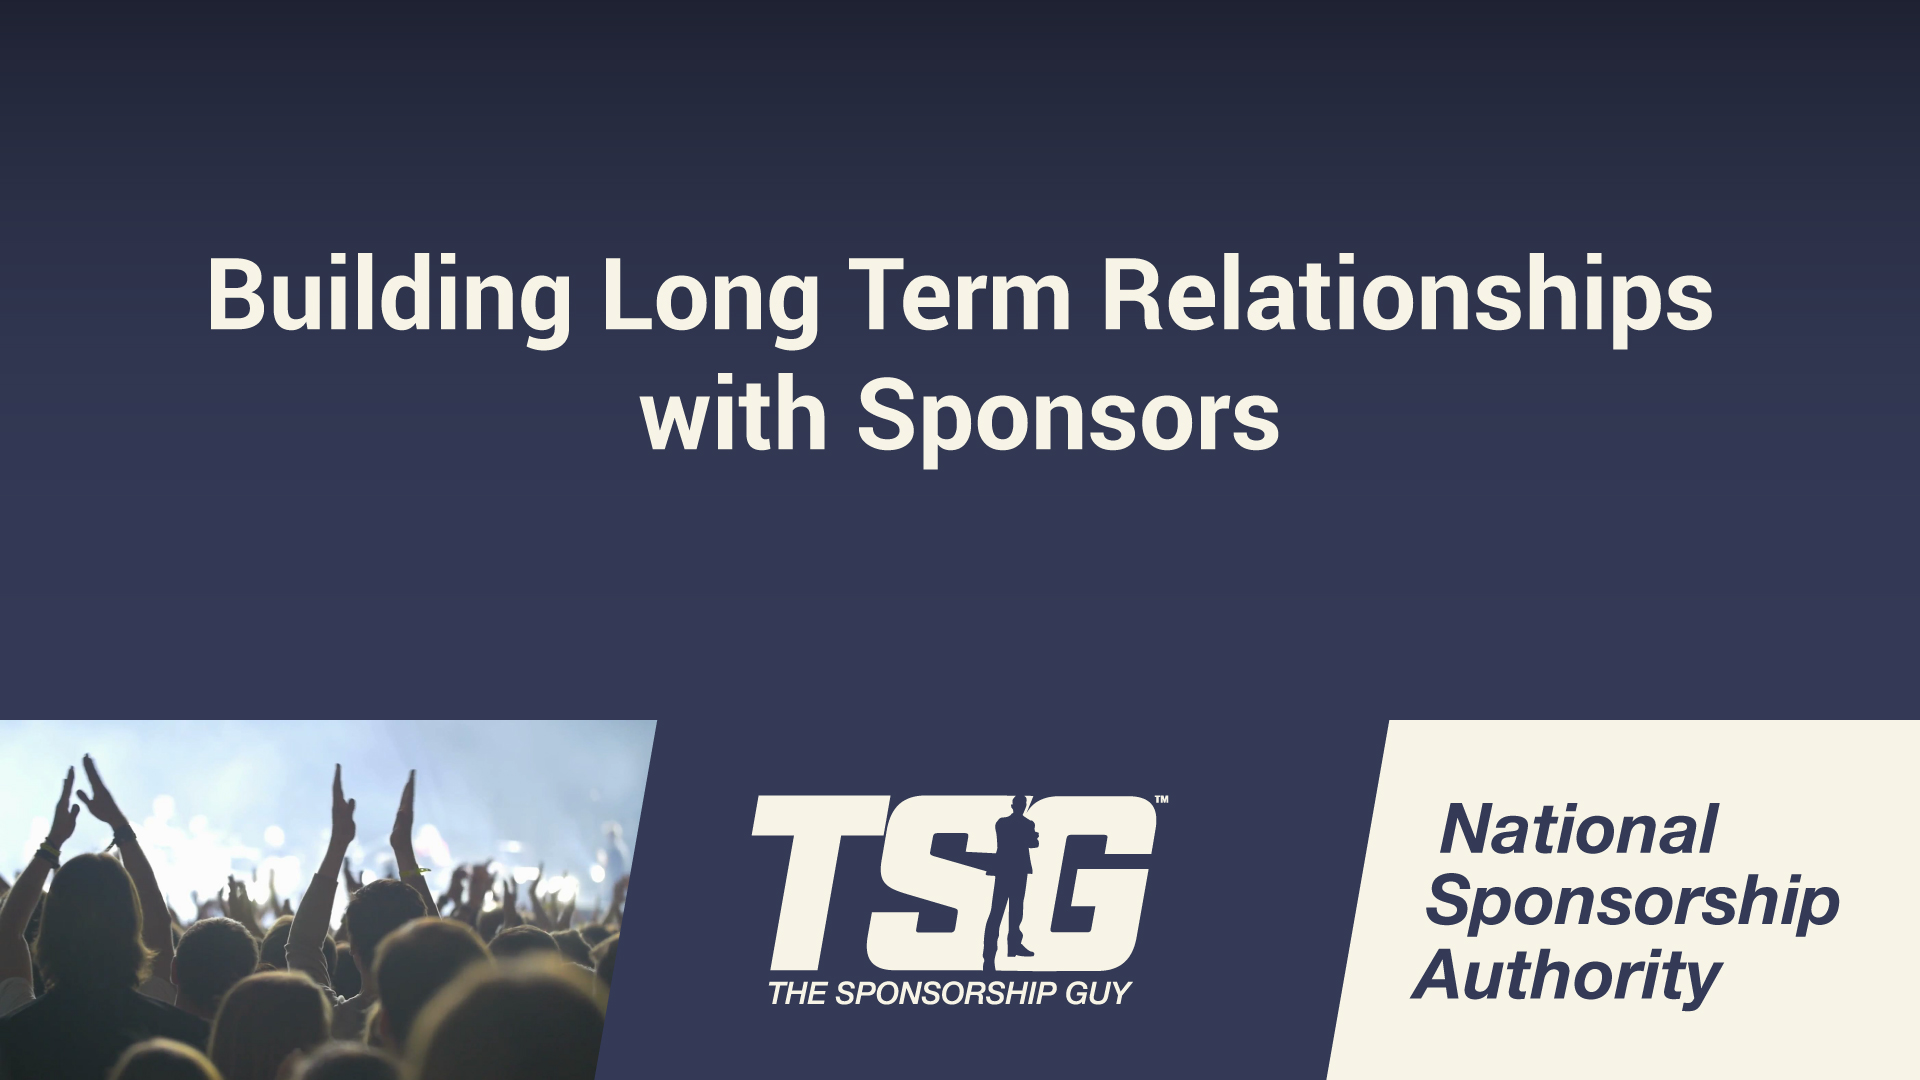 Building Long Term Relationships with Sponsors